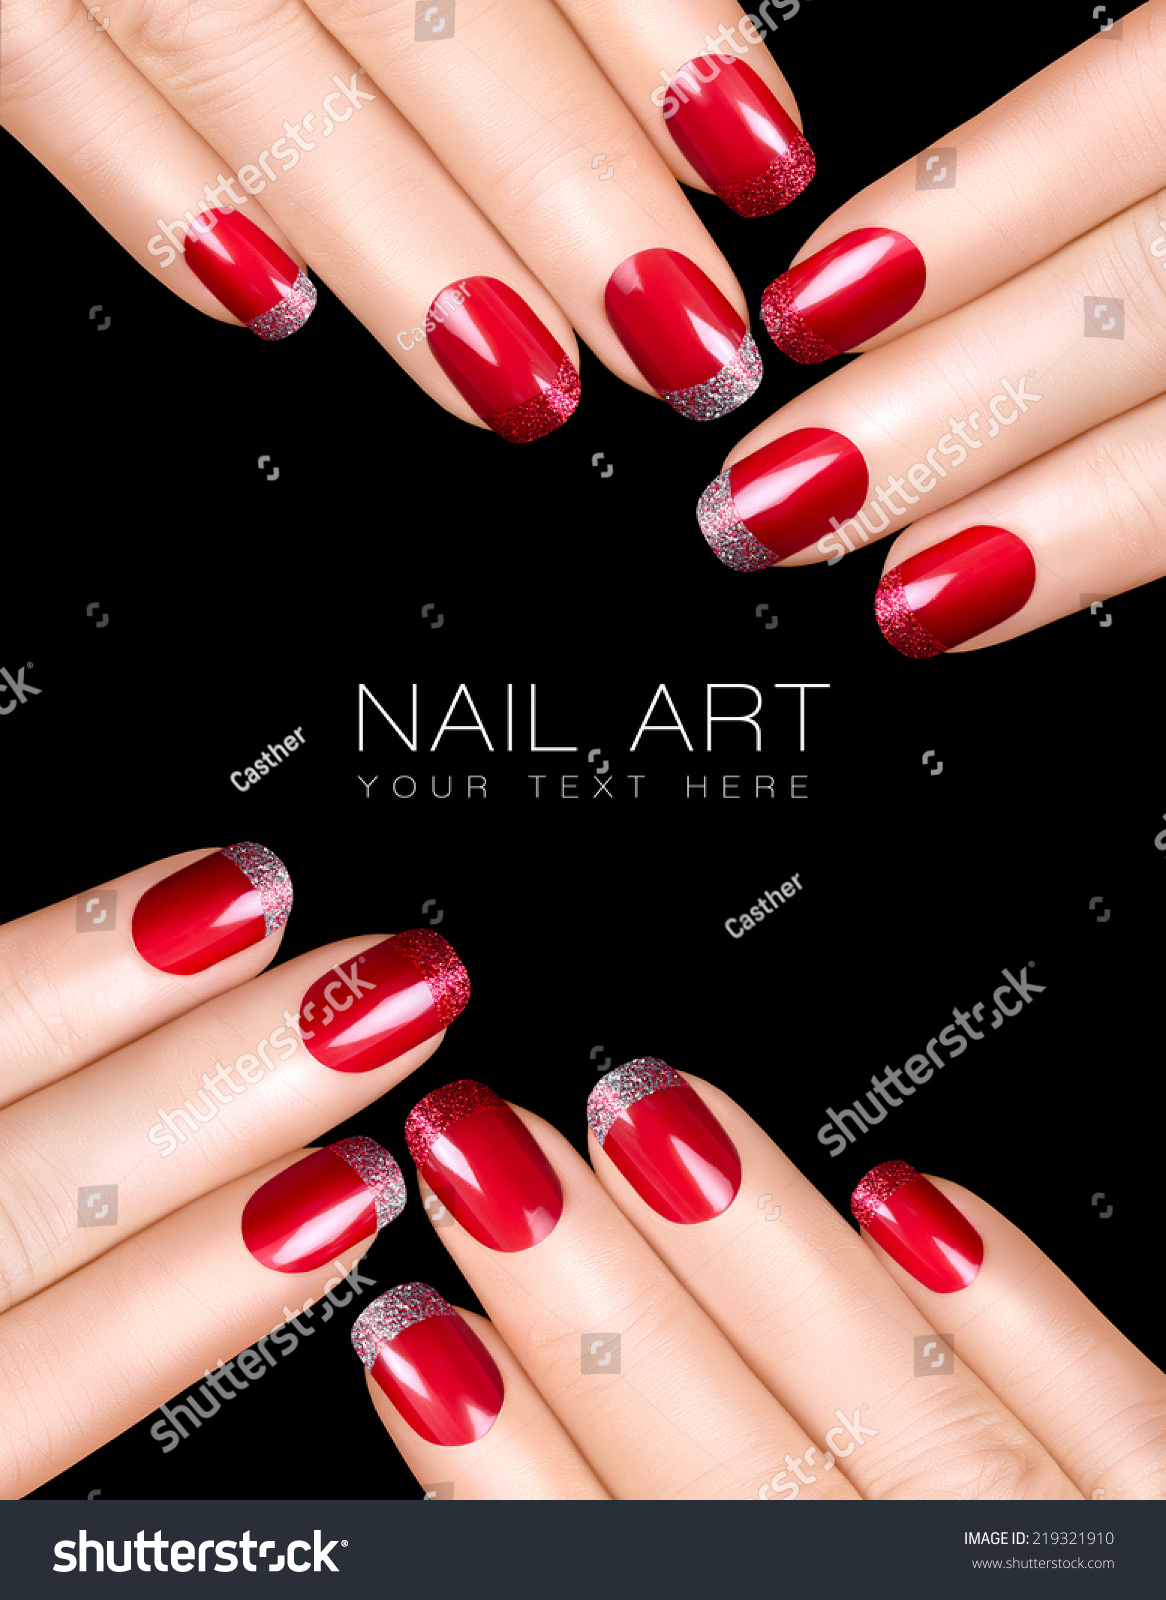 holiday nail art luxury nail polish with glitter french manicure in